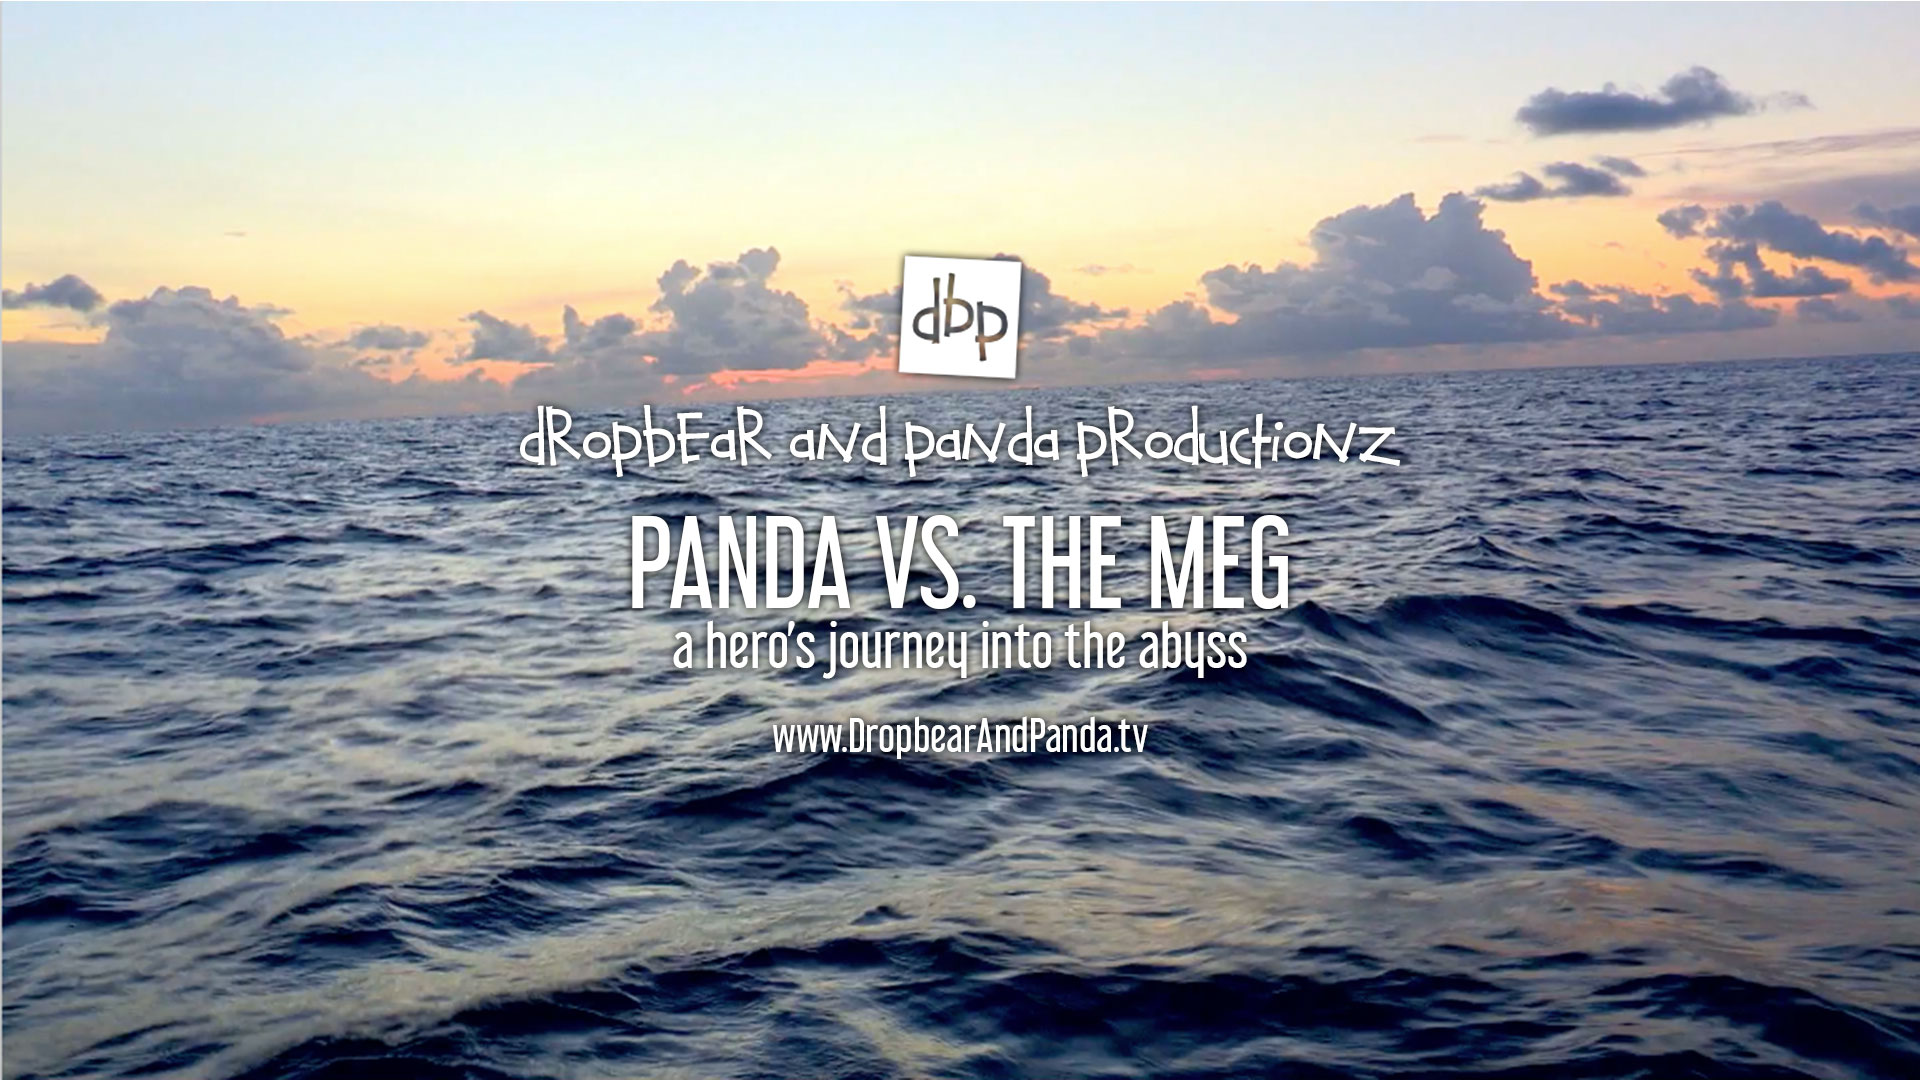 Panda vs. The Meg